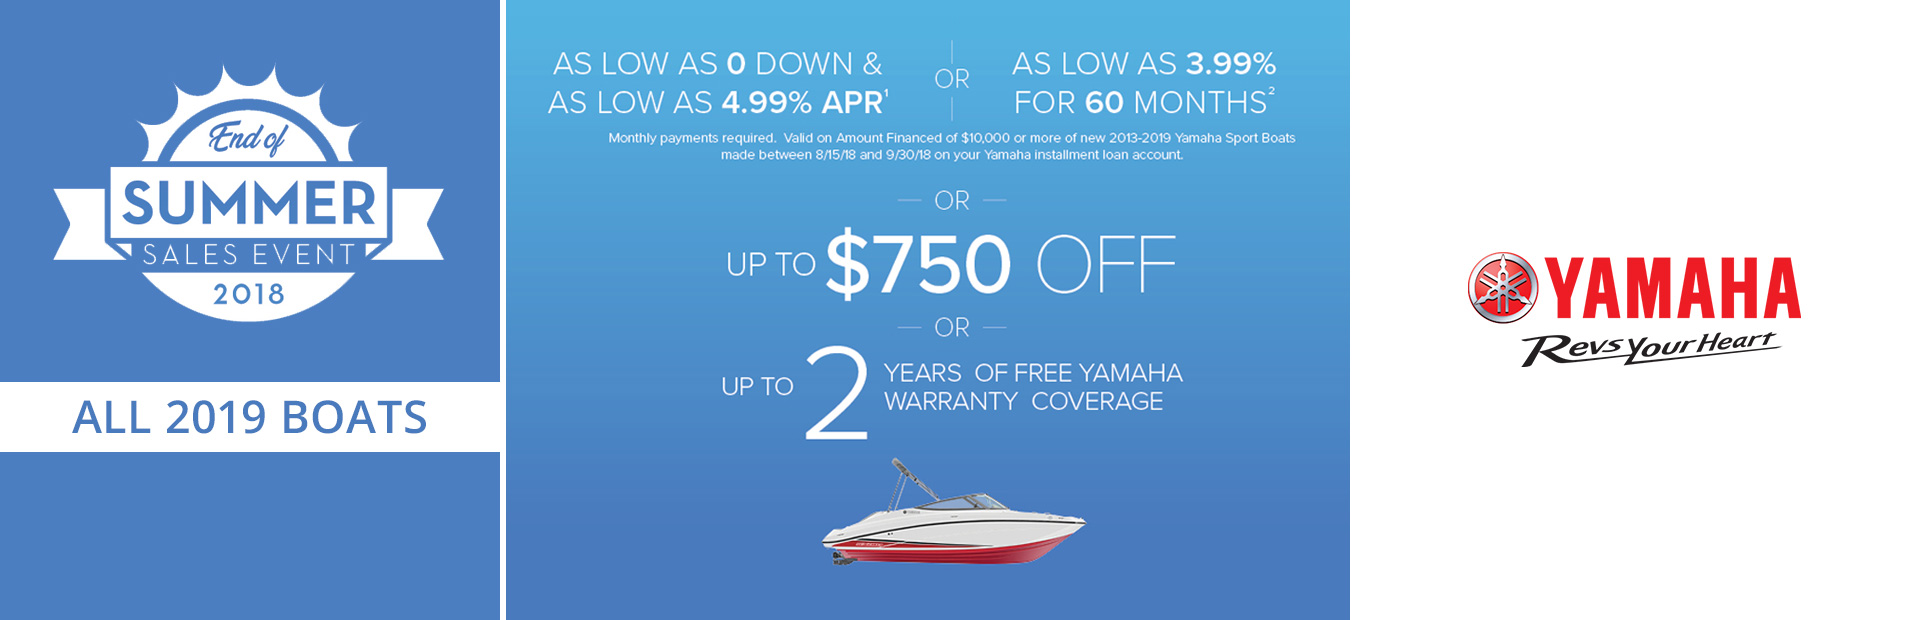 Yamaha: End of Summer Sales Event - 2019 Boats